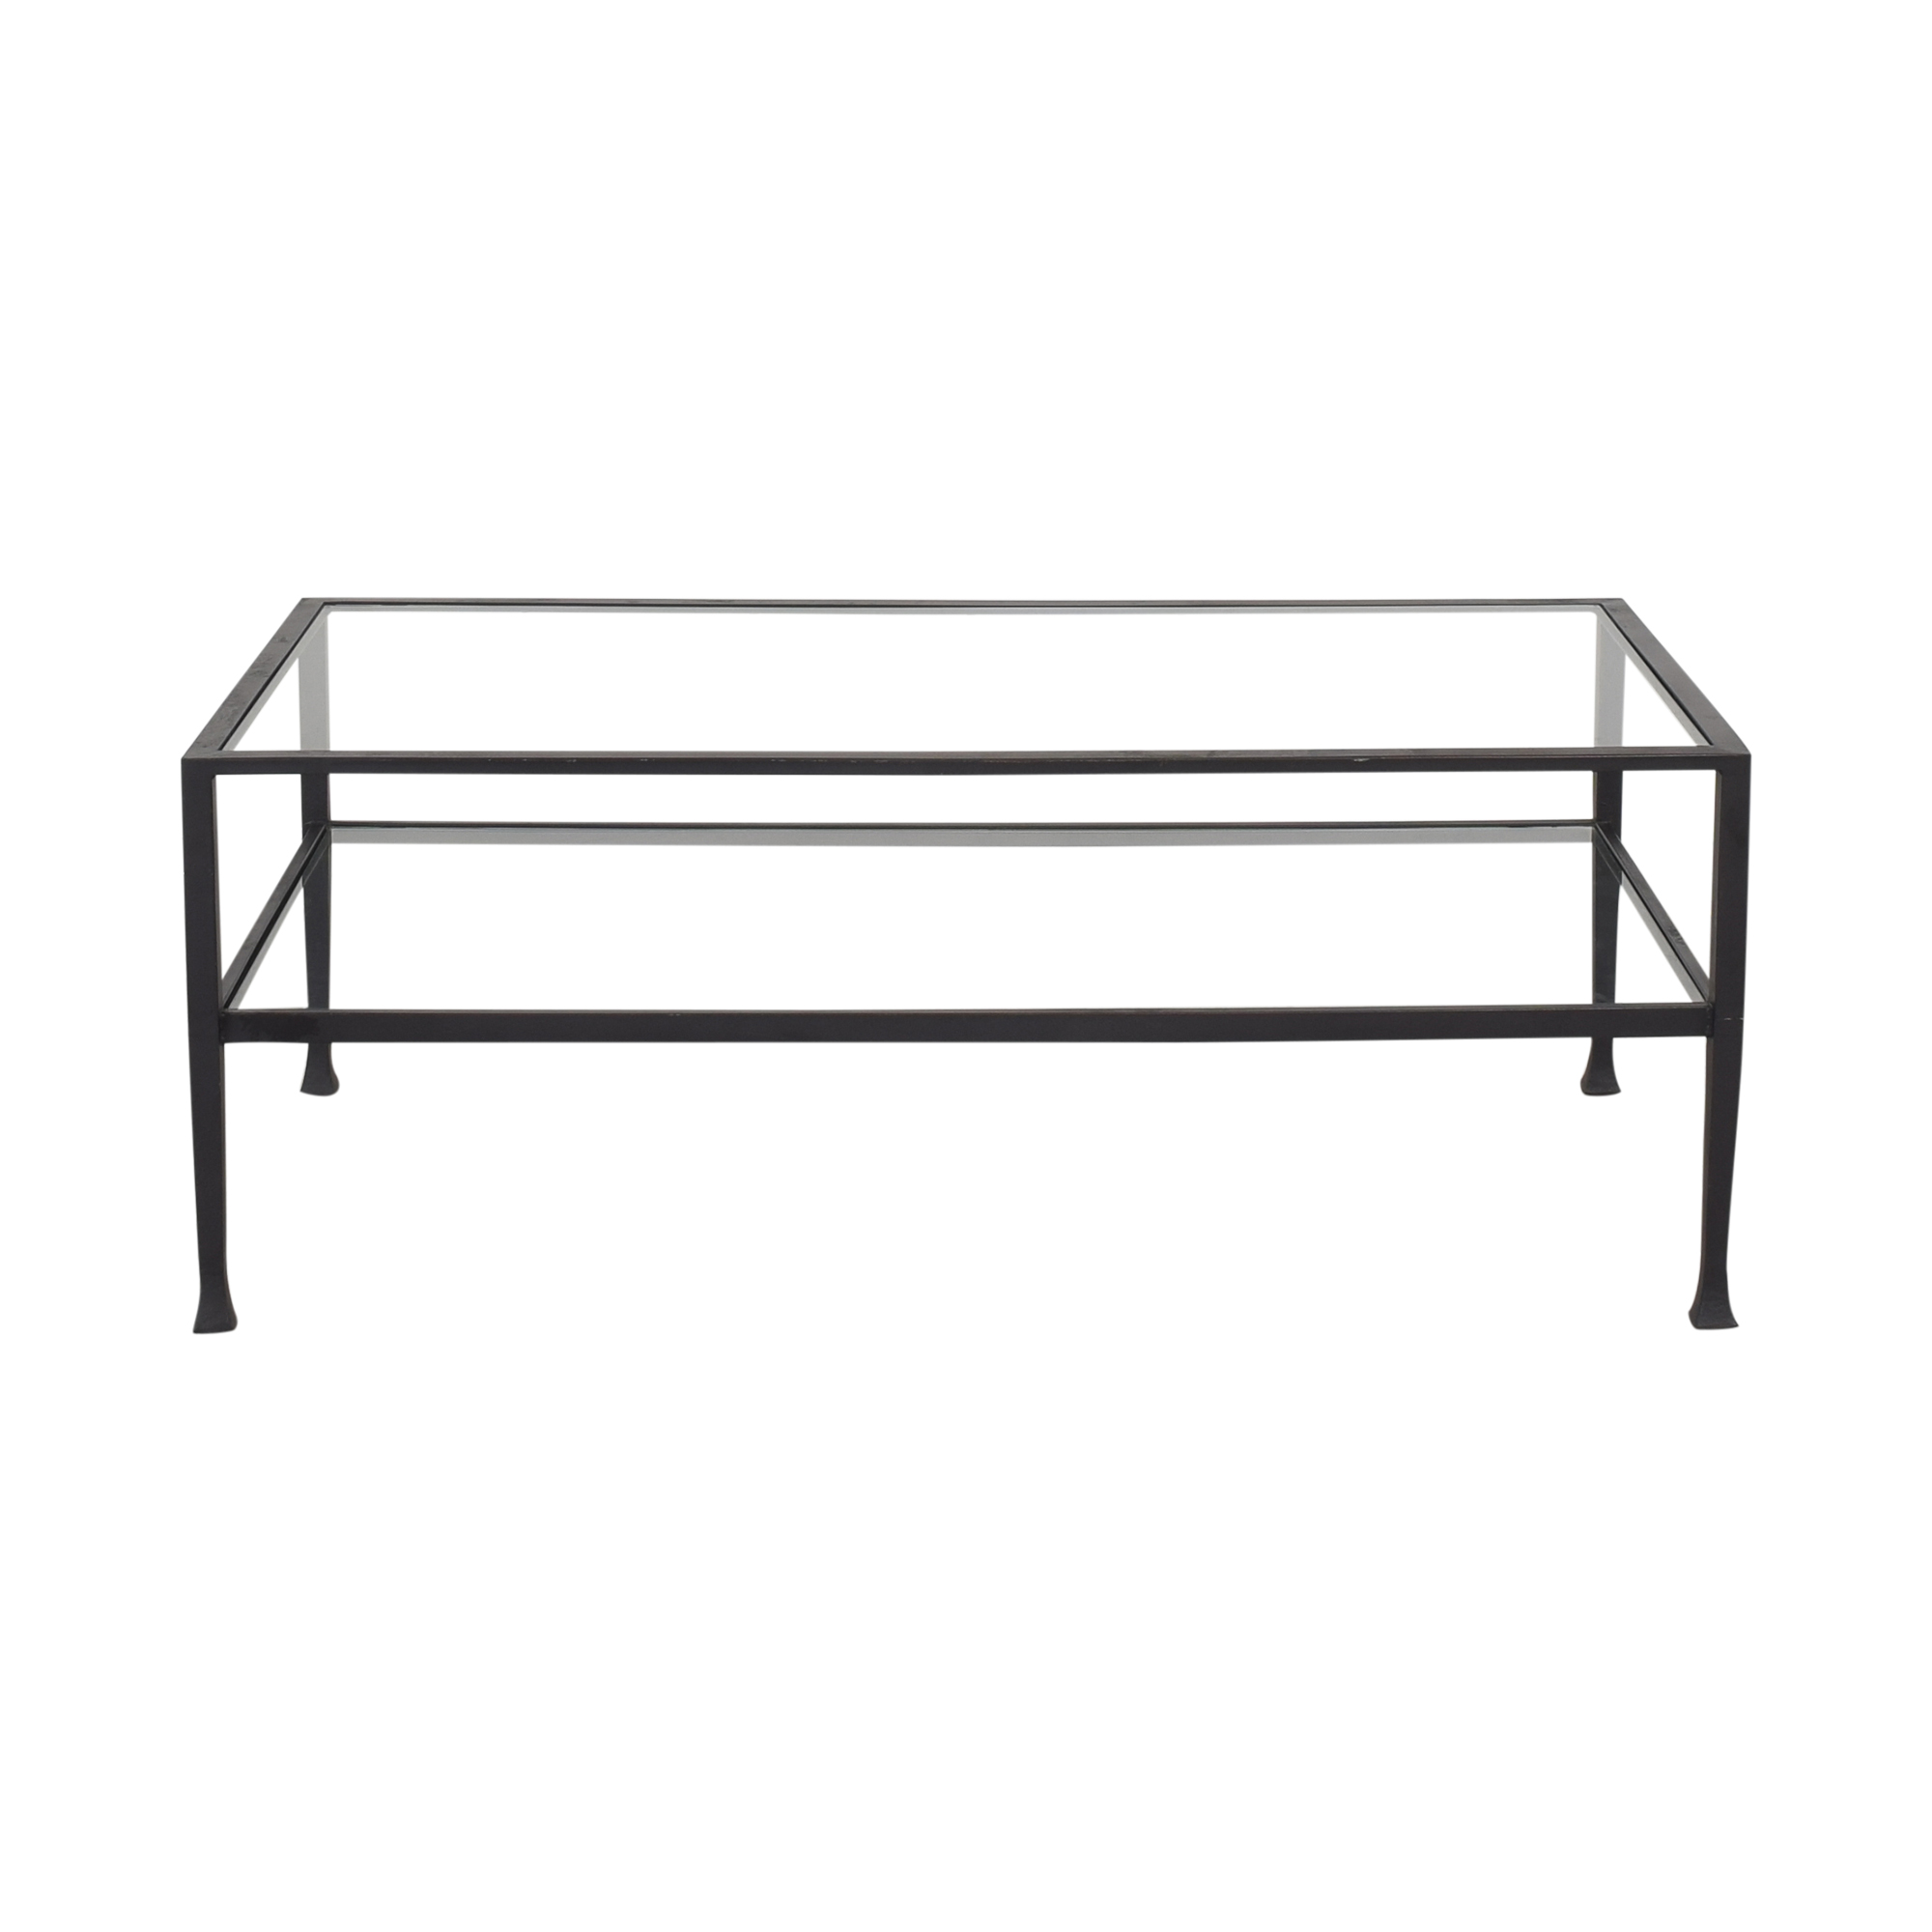 Crate & Barrel Crate & Barrel Tanner Rectangular Coffee Table for sale